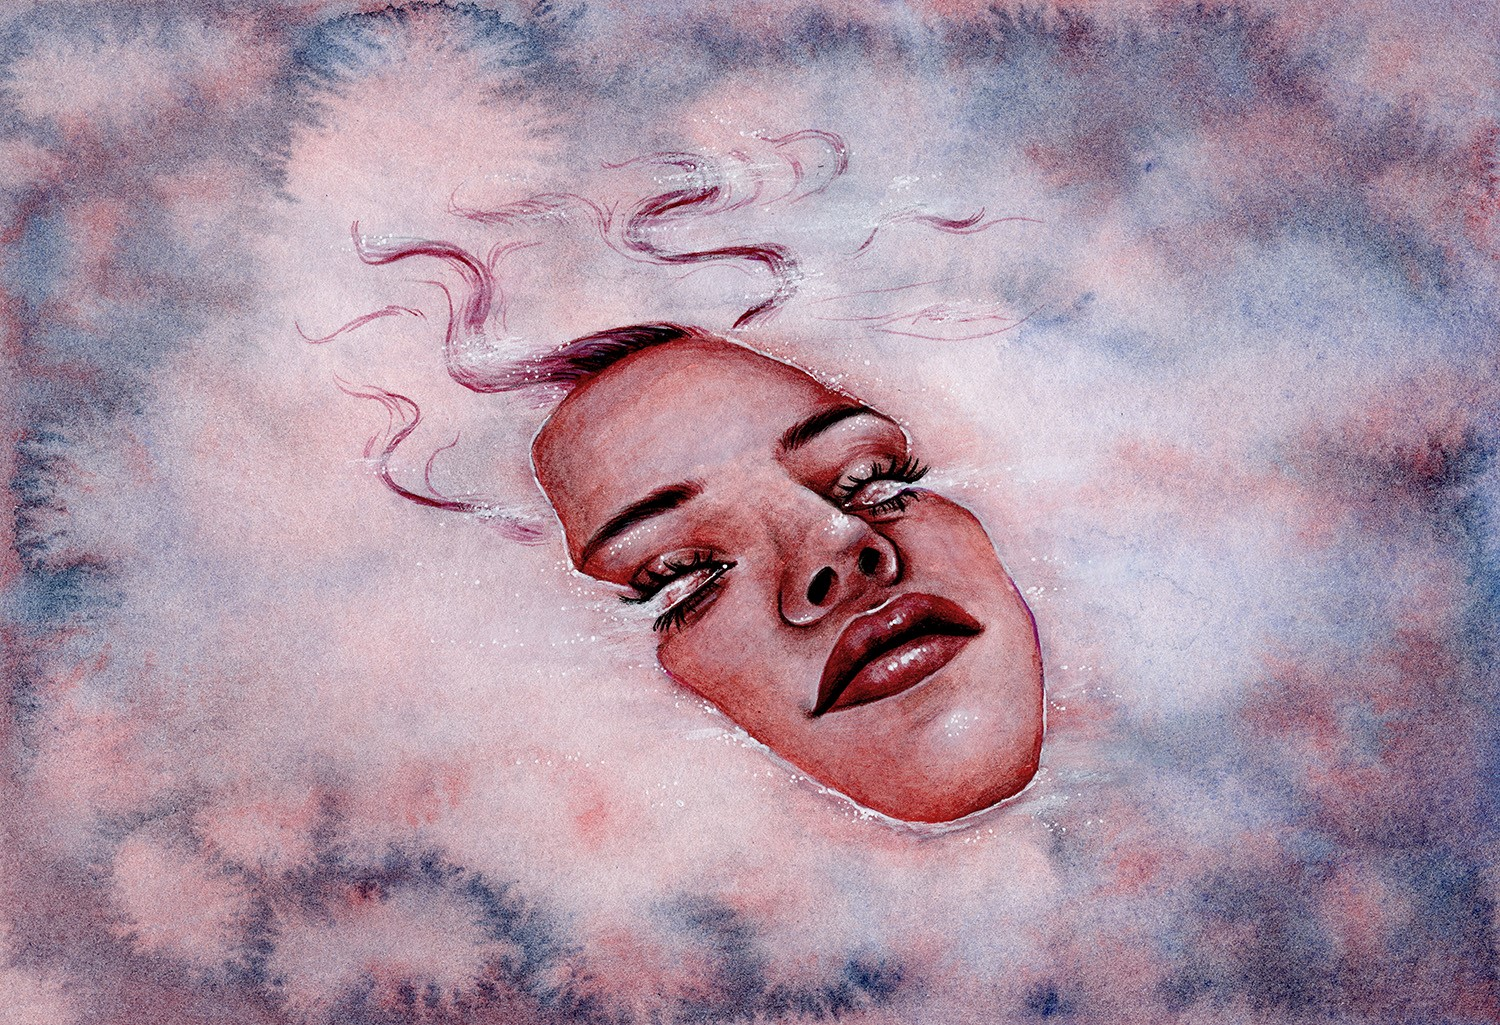 Ascendant - Watercolour Illustration